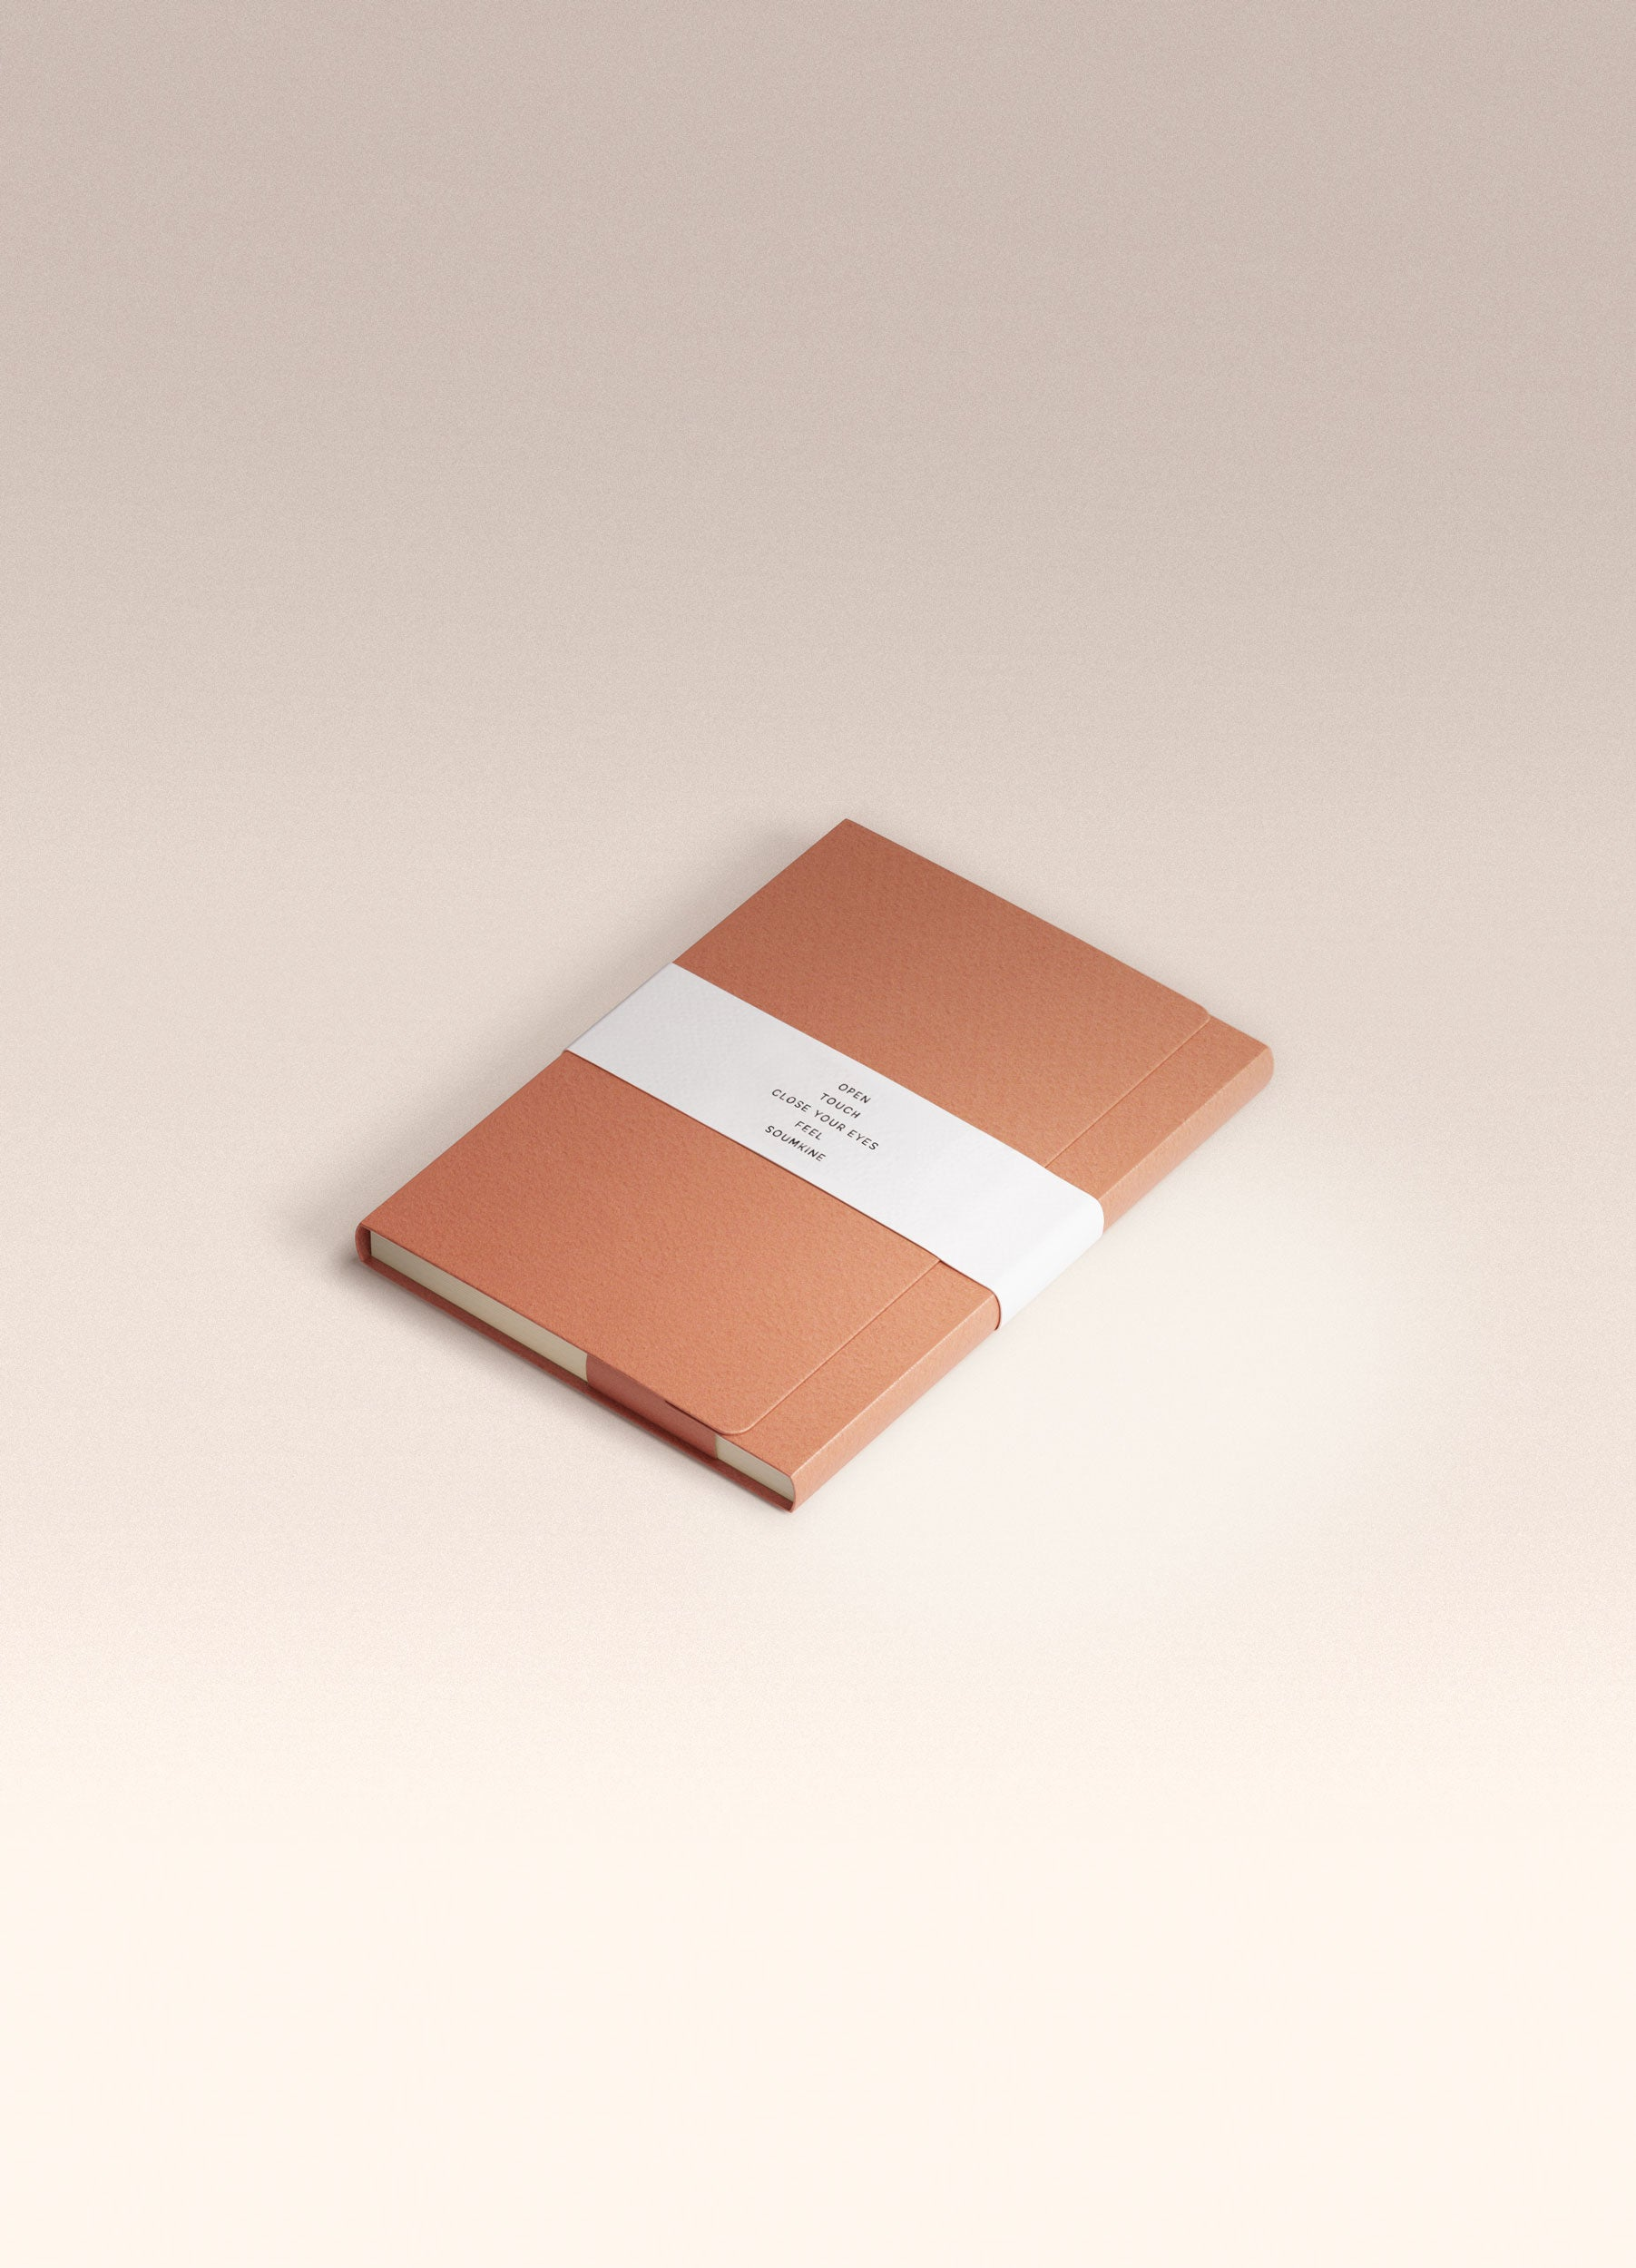 N.204 (PLAIN) Notebook. B6 Size